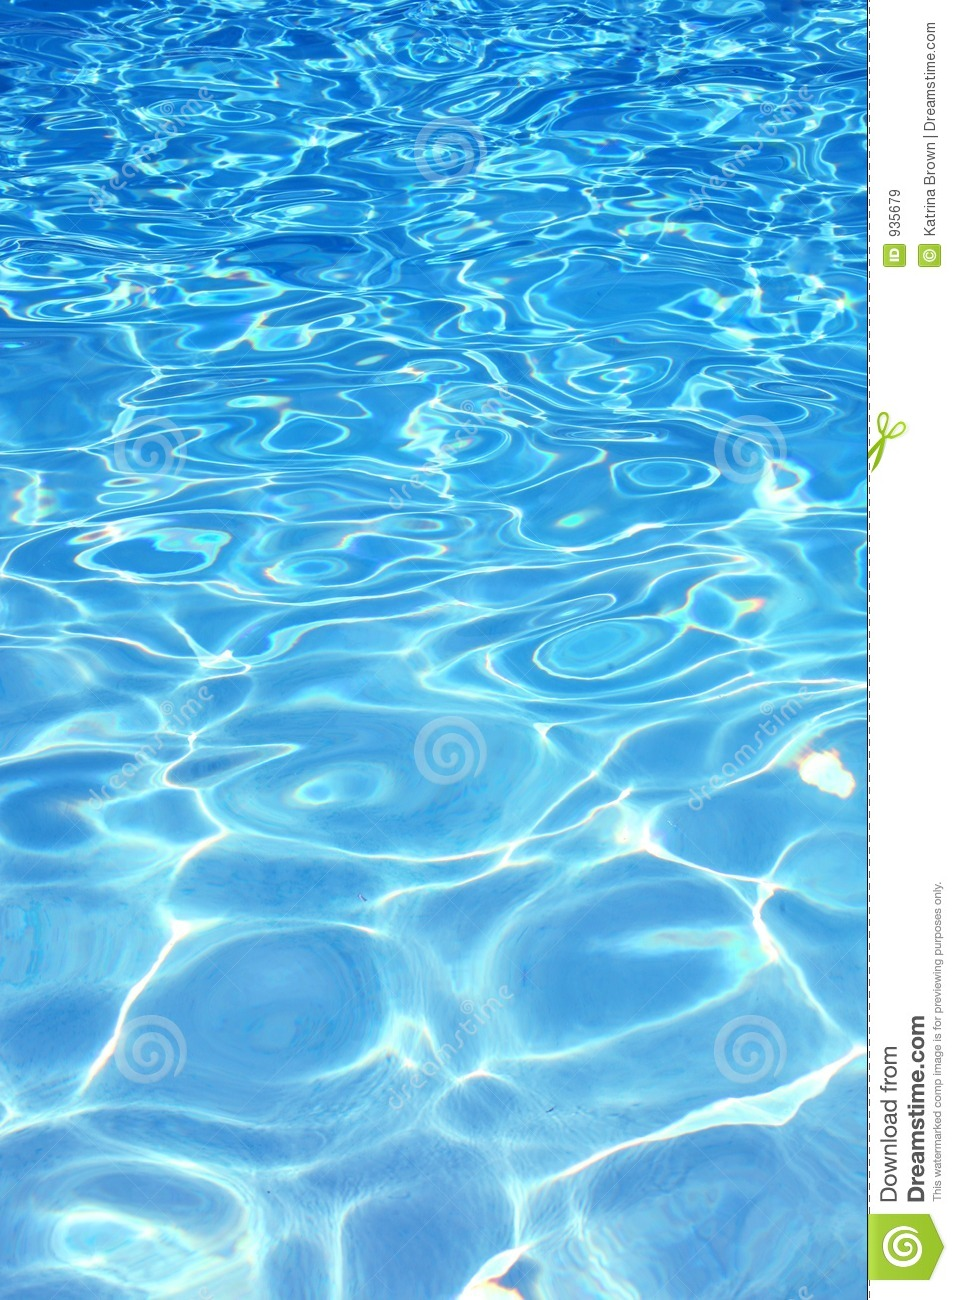 Blue pool water background royalty free stock images for Object pool design pattern